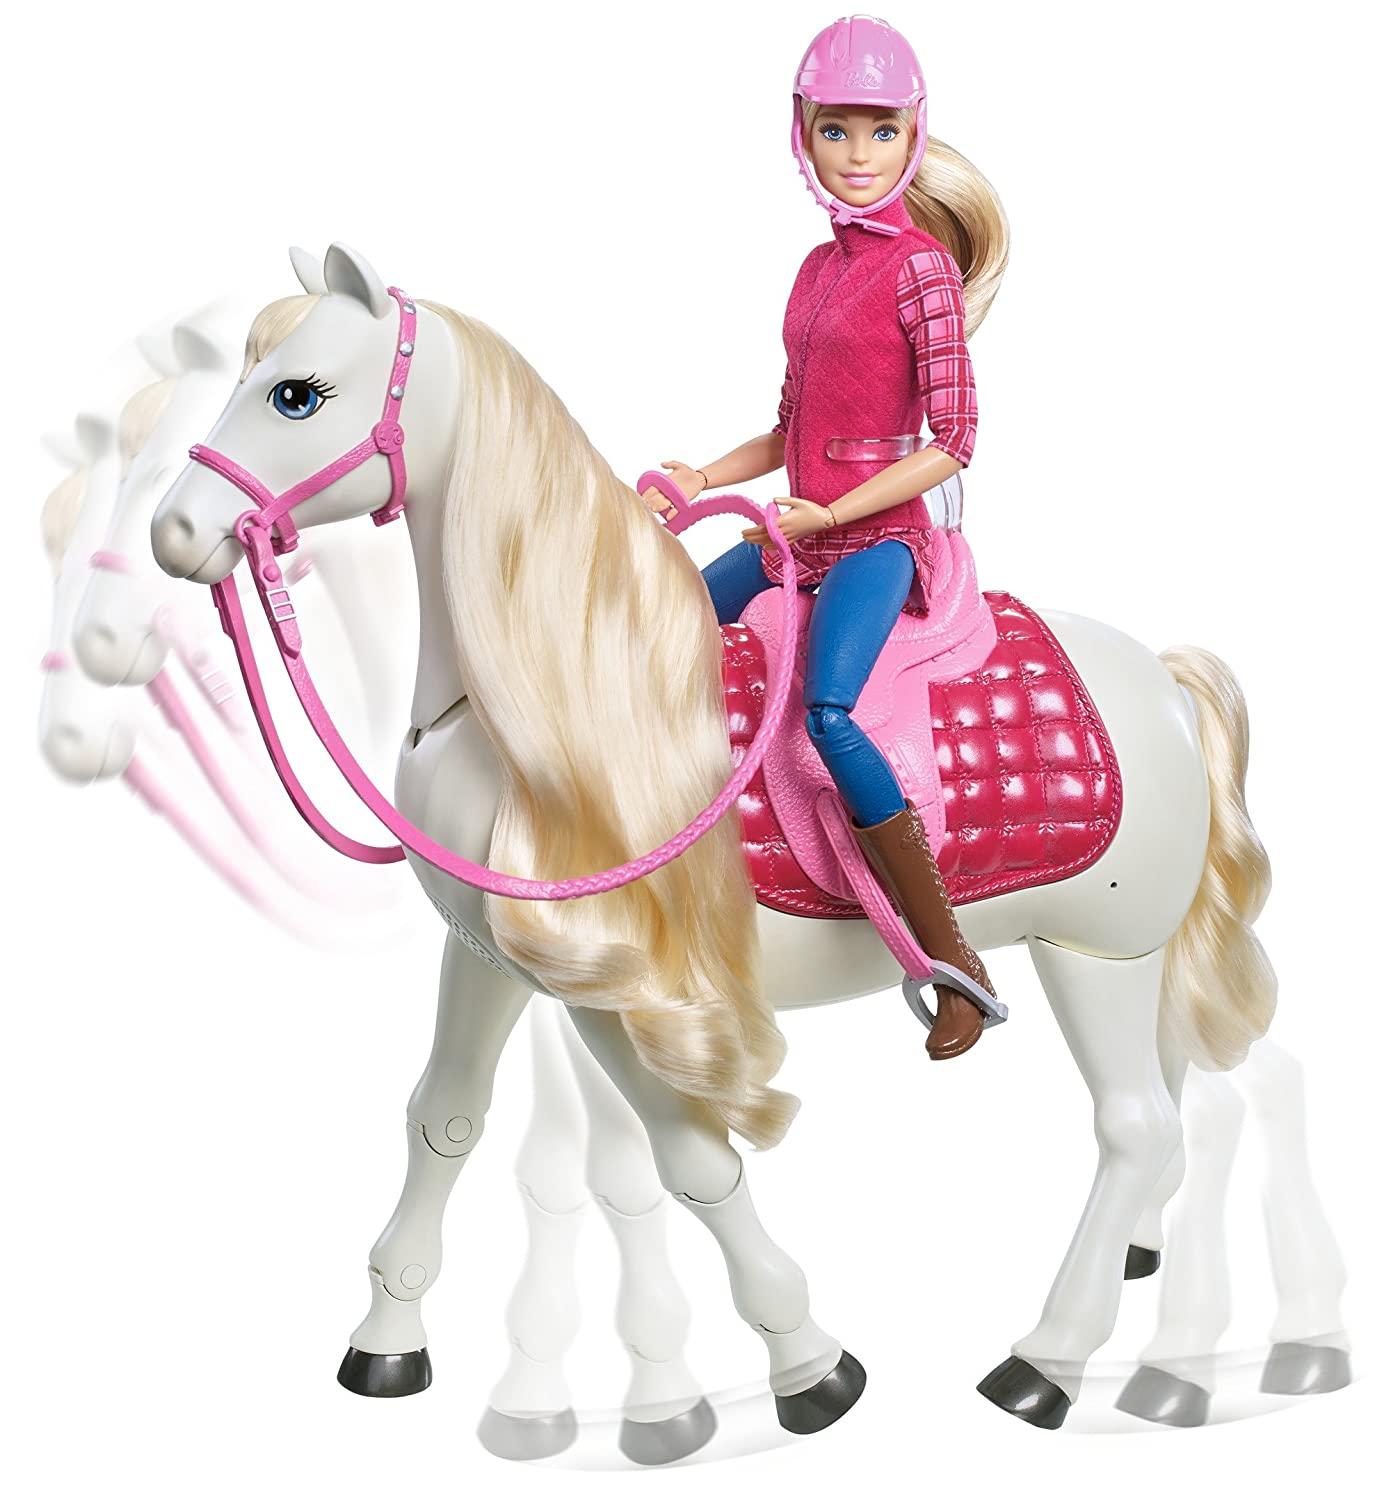 Barbie FTF02 Dreamhorse Doll and horse Amazon Toys & Games